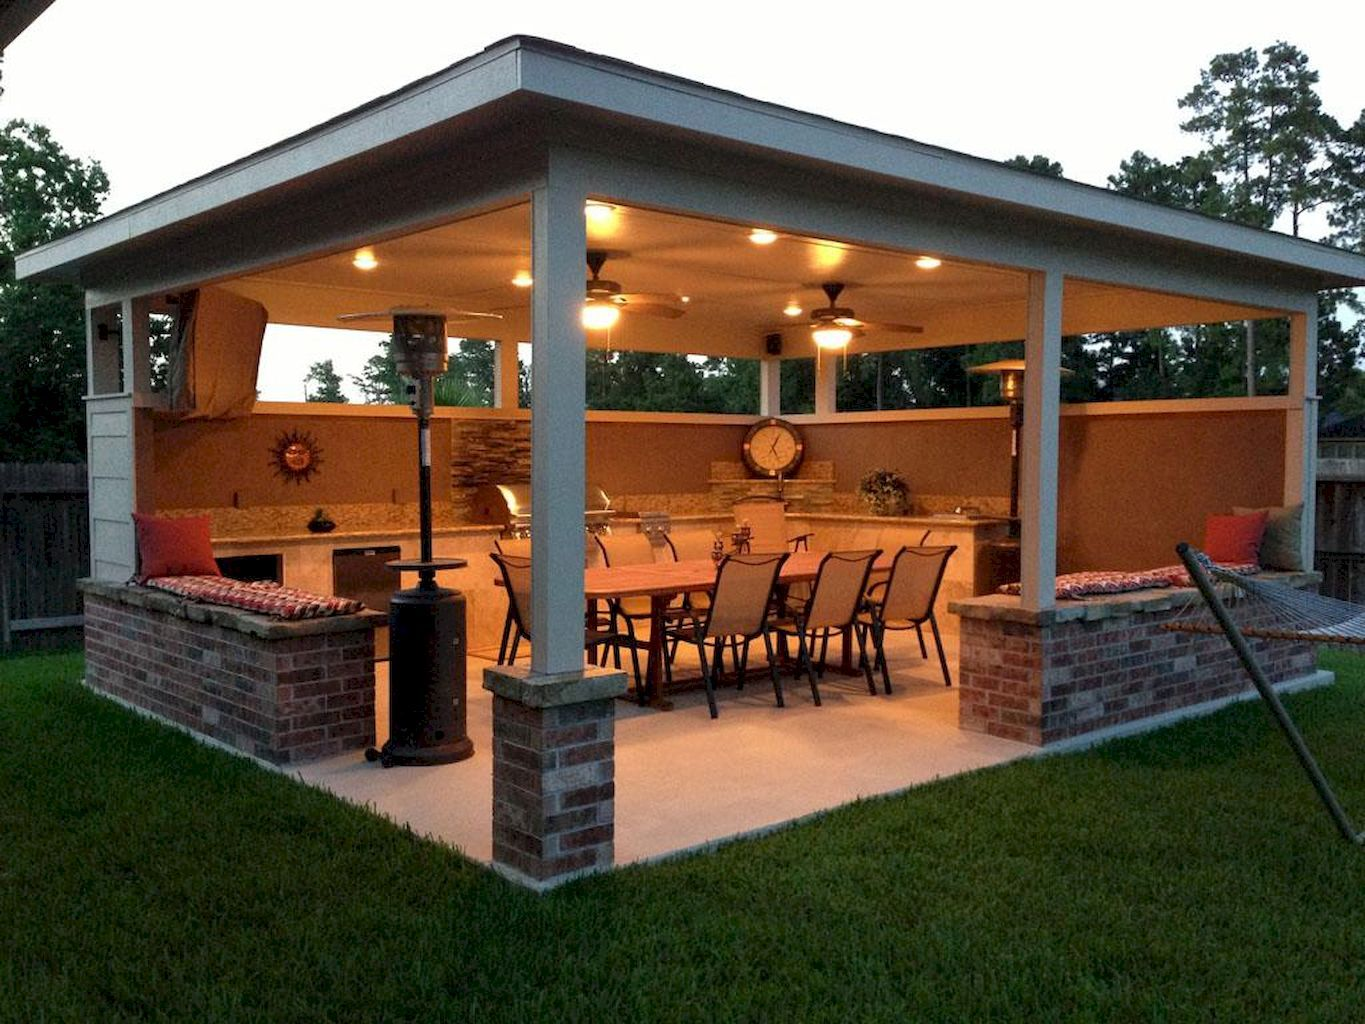 60 Awesome Outdoor Kitchens Ideas On A Budget Backyard Backyard Patio Outdoor Patio